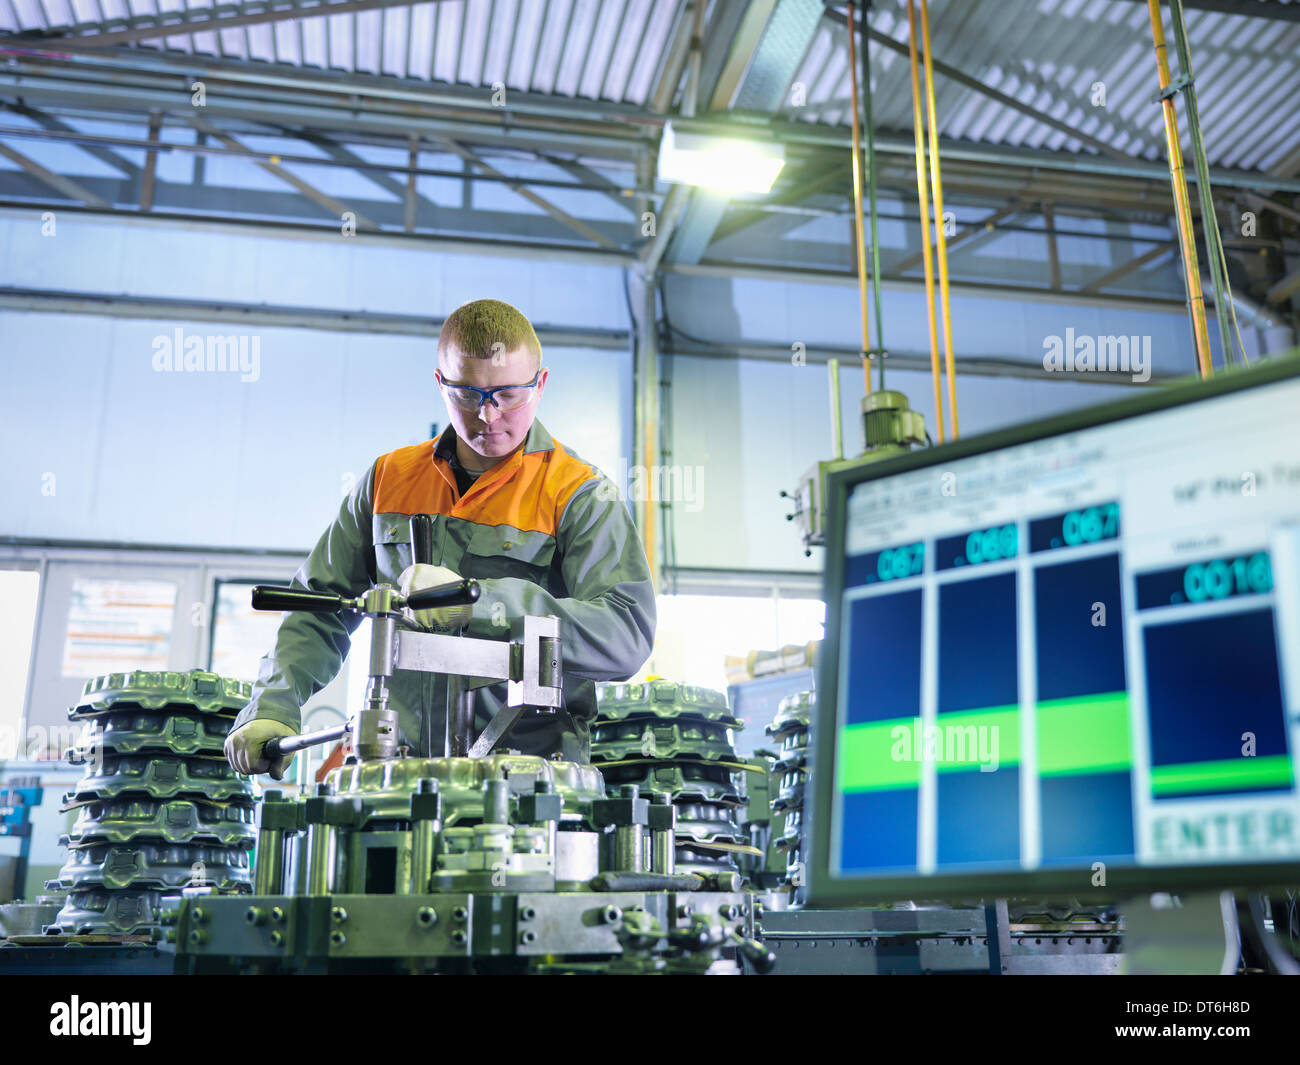 Worker assembling and testing clutches on rig in factory - Stock Image